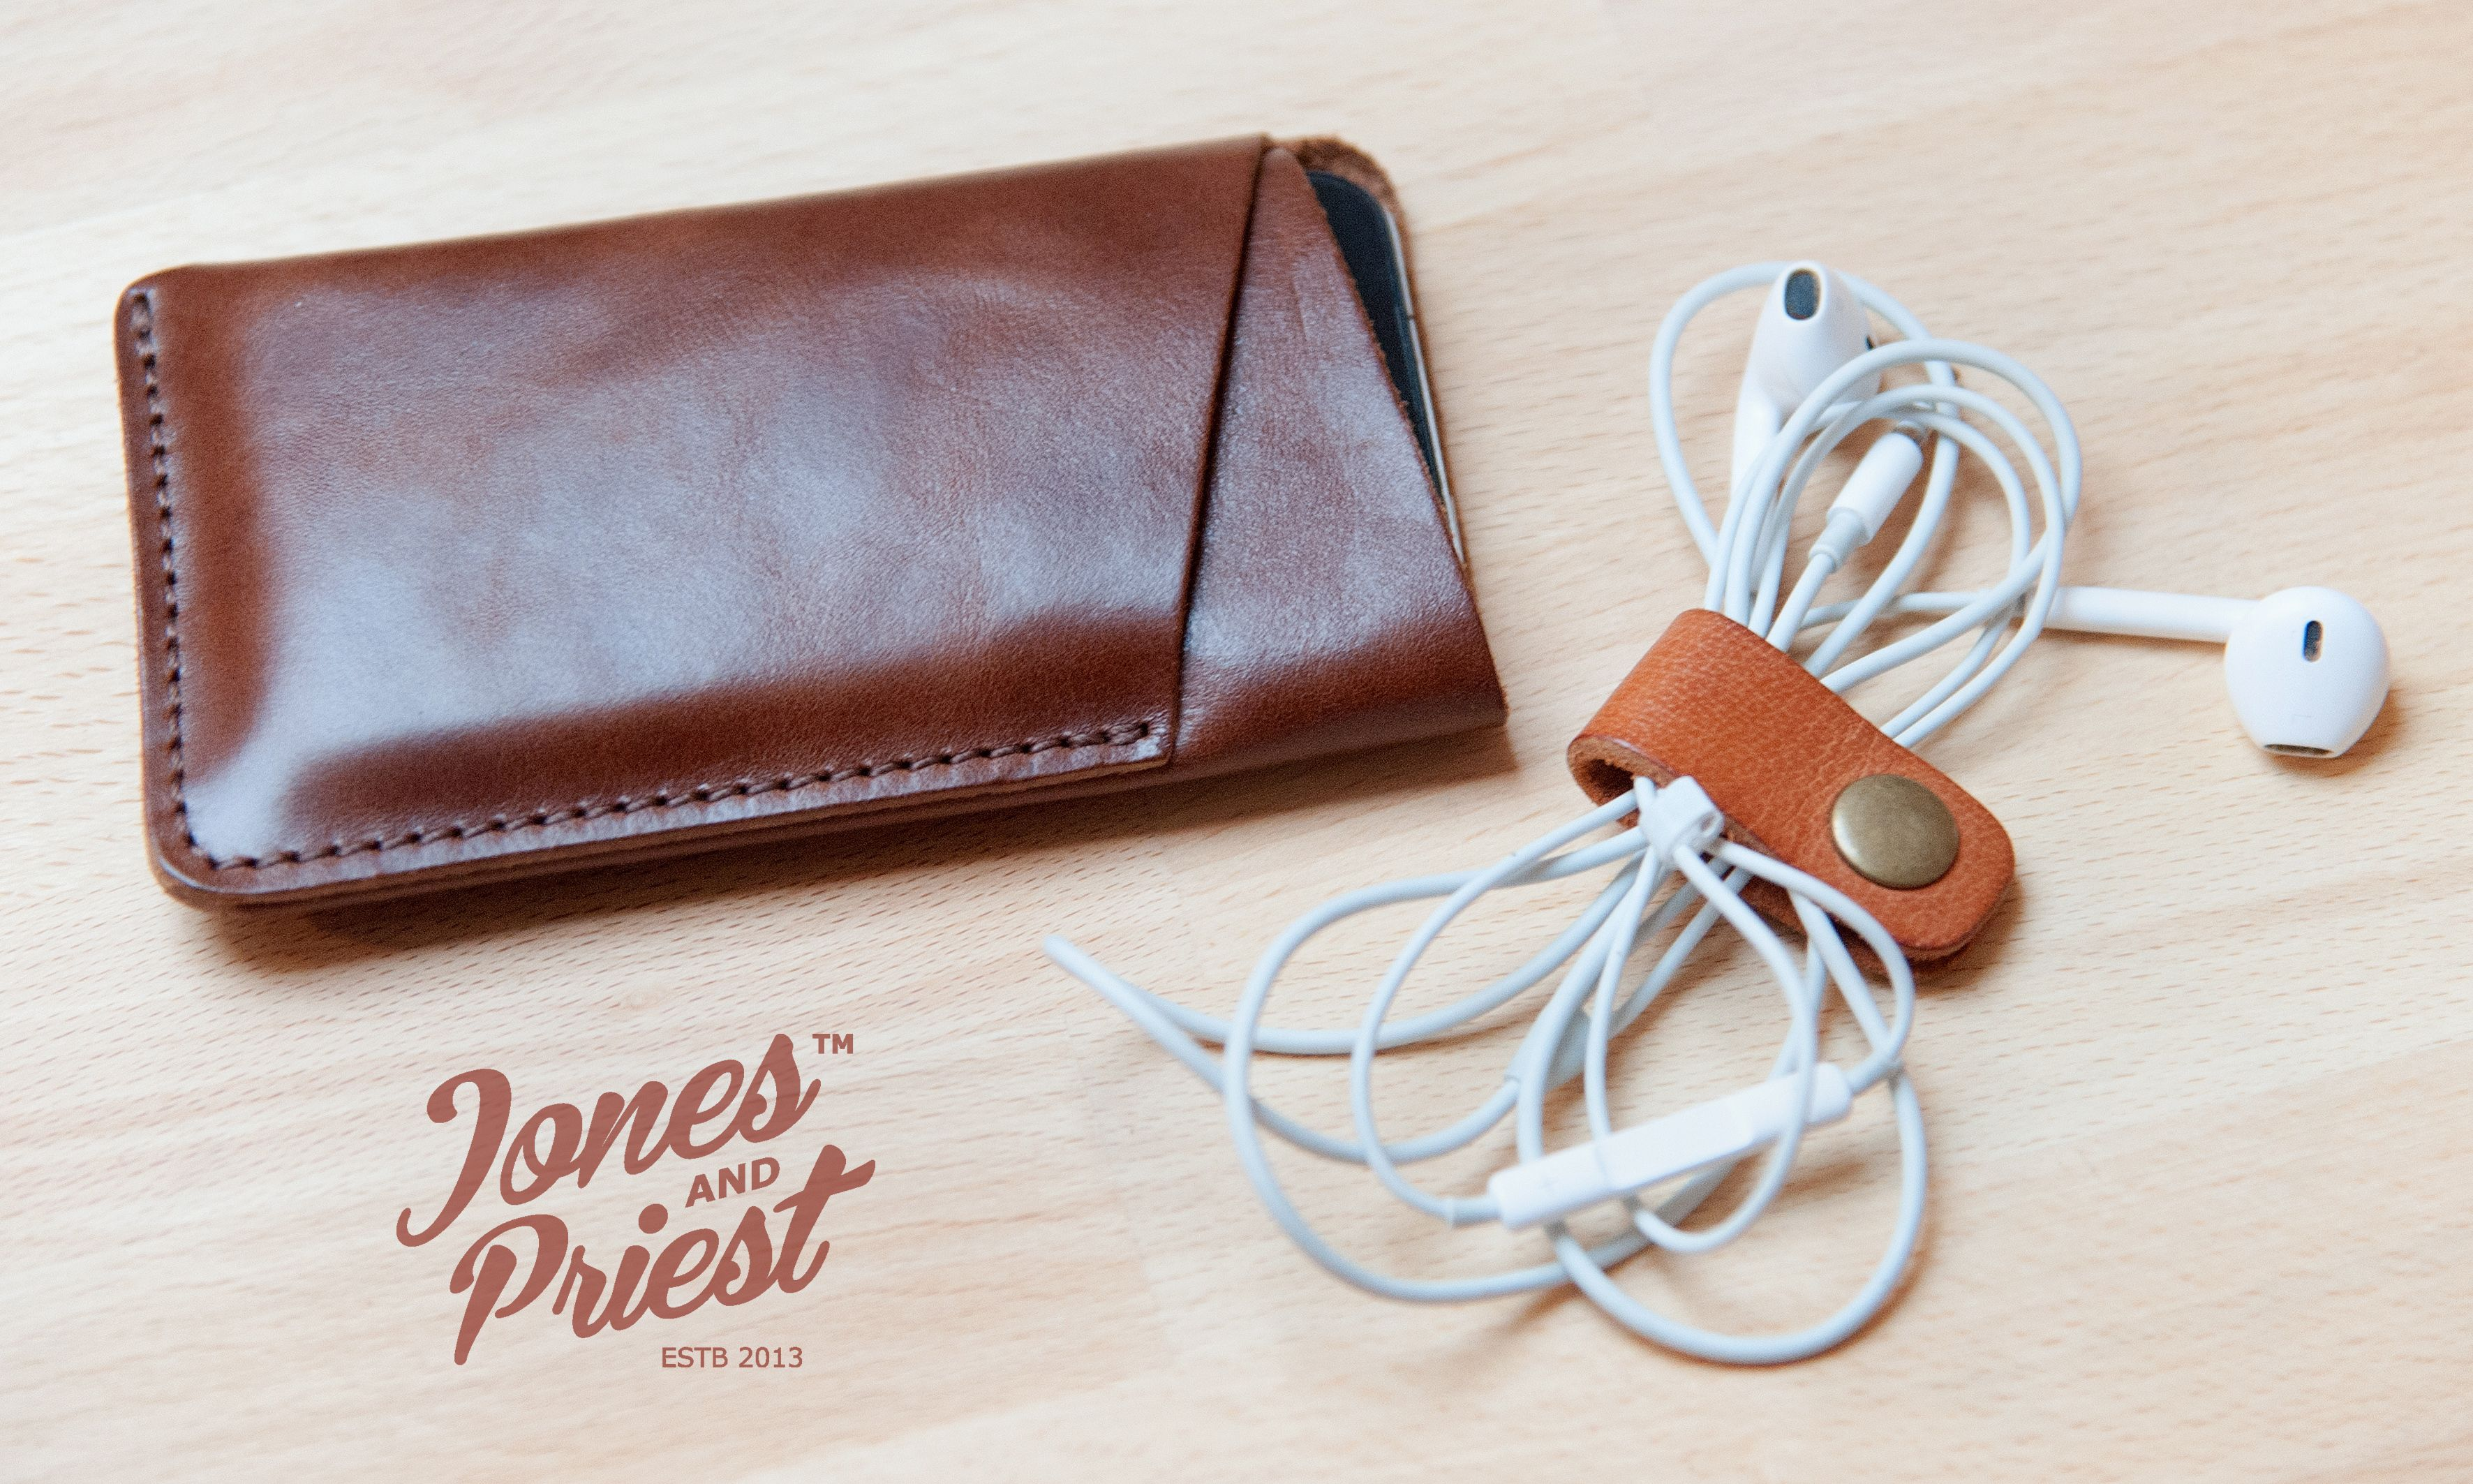 Handmade Leather Iphone Sleeve by Jones&Priest